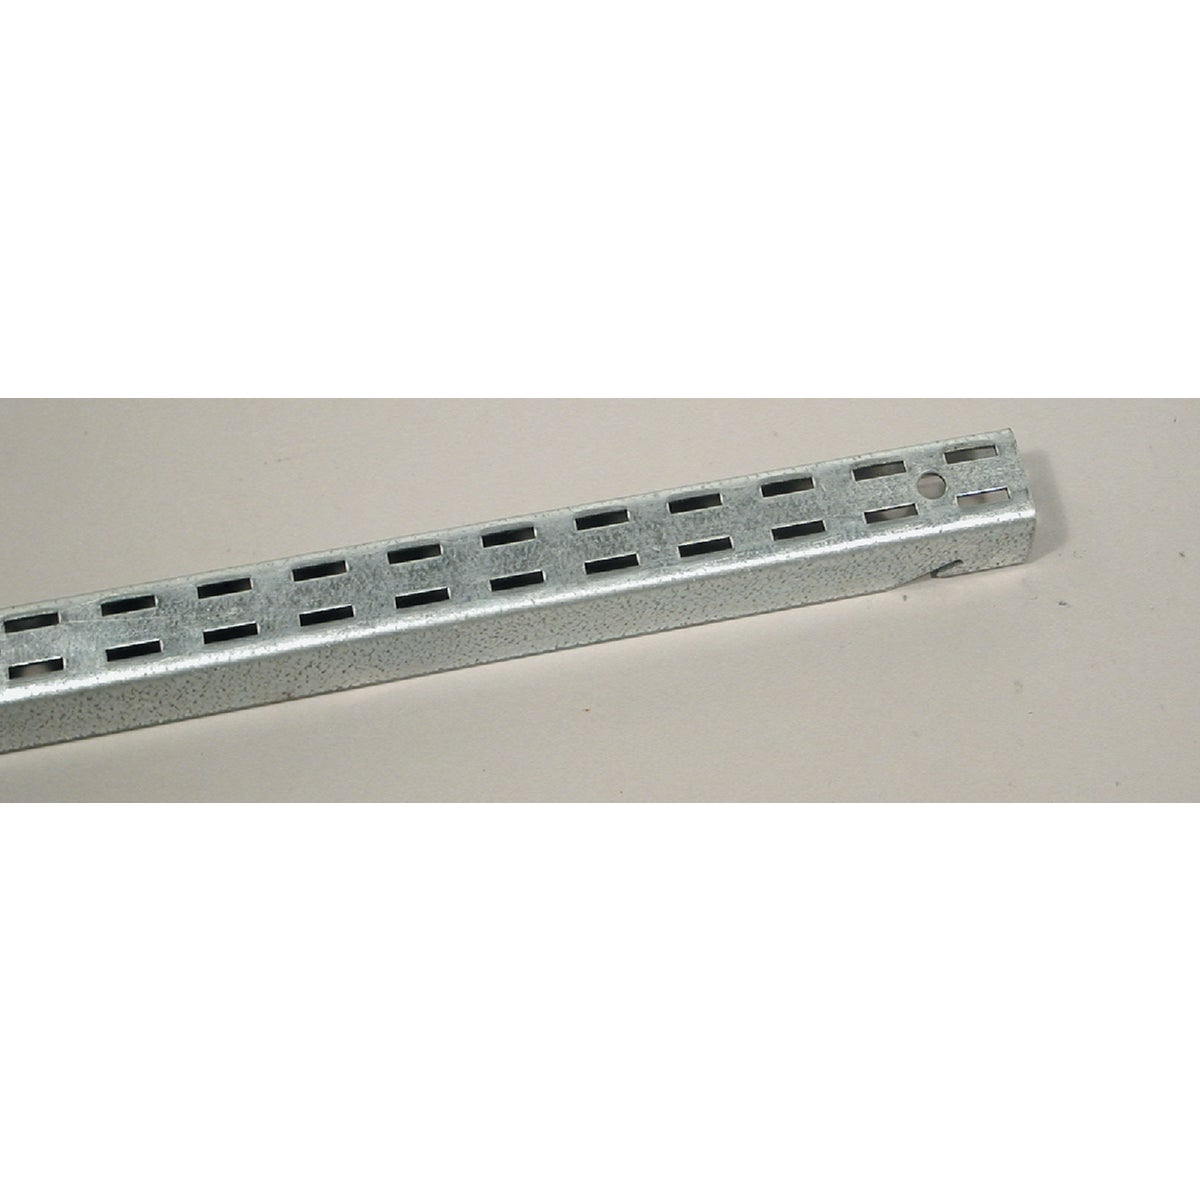 4' TWIN SLOTTED STANDARD - BK01004 by Knape & Vogt Mfg Co